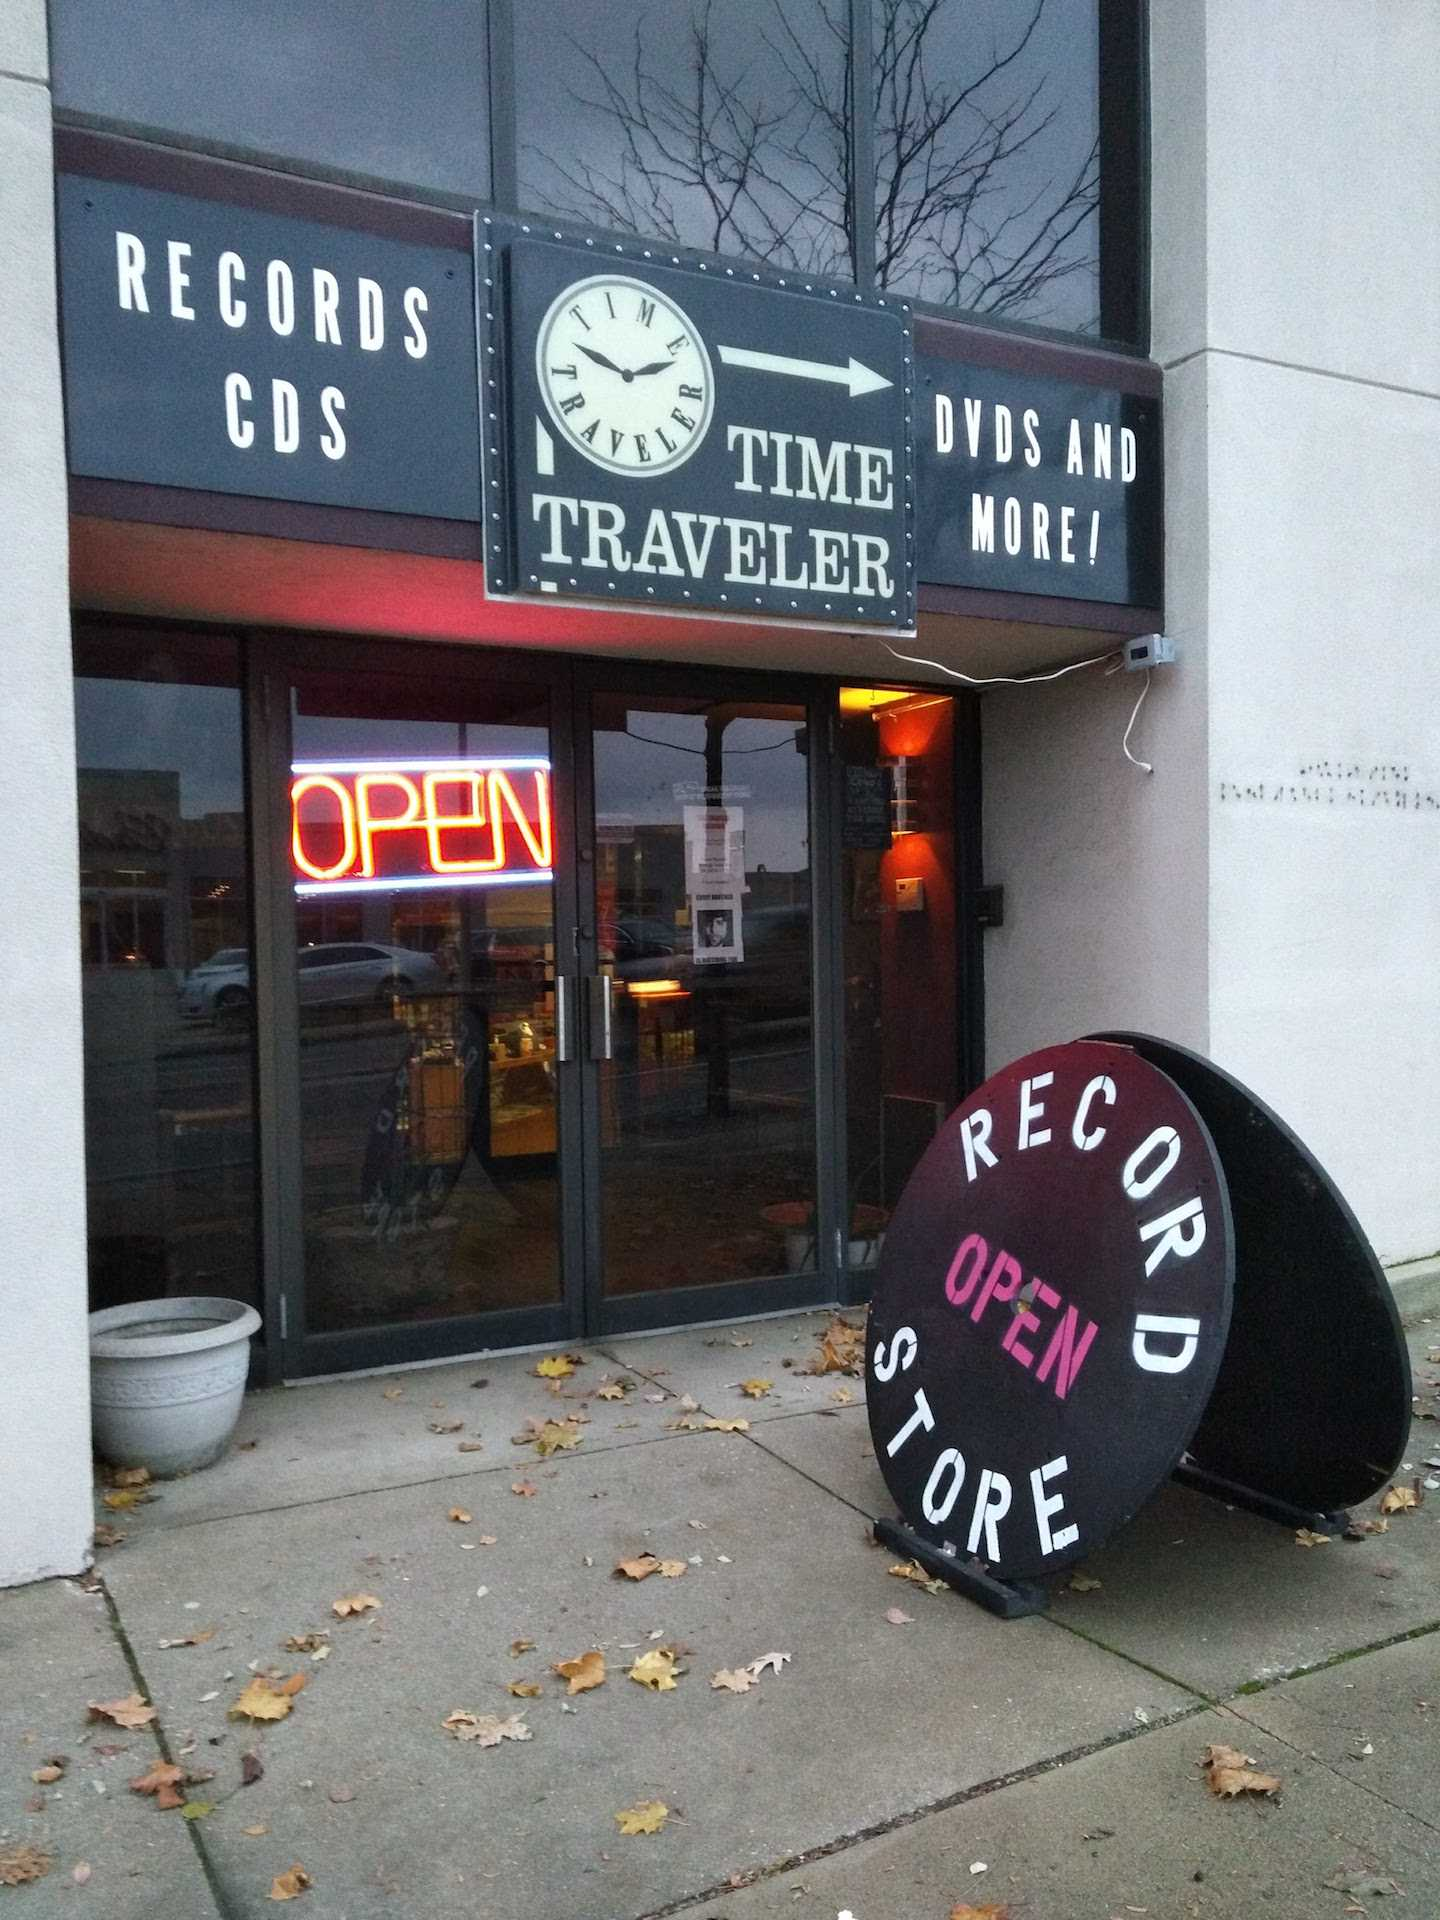 Time Traveler Records is your one stop destination for new and used vinyl and CD's.